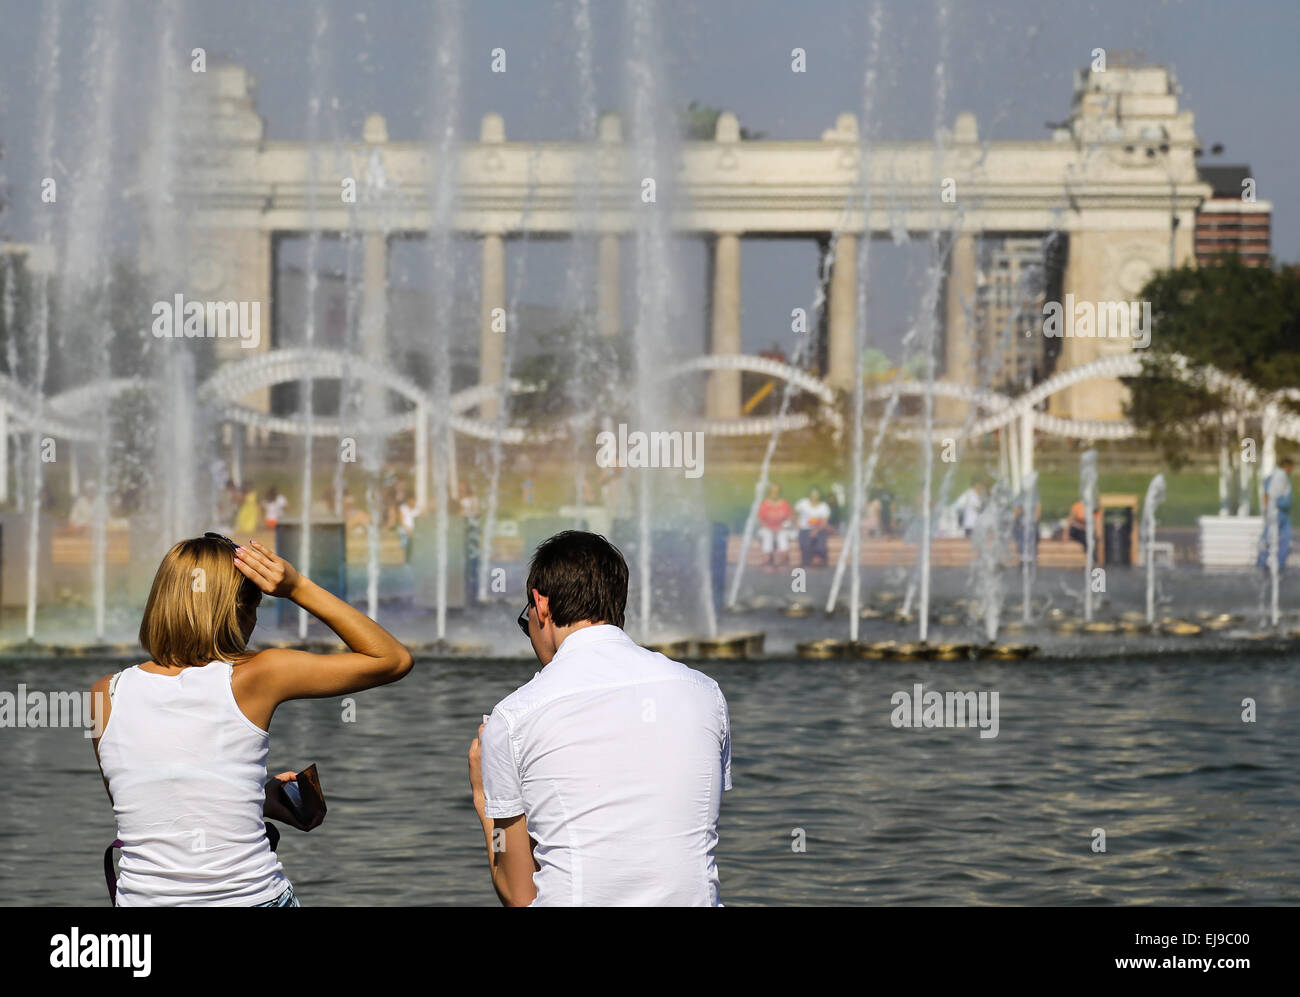 Relaxing at Gorki-Park in Moscow - Stock Image